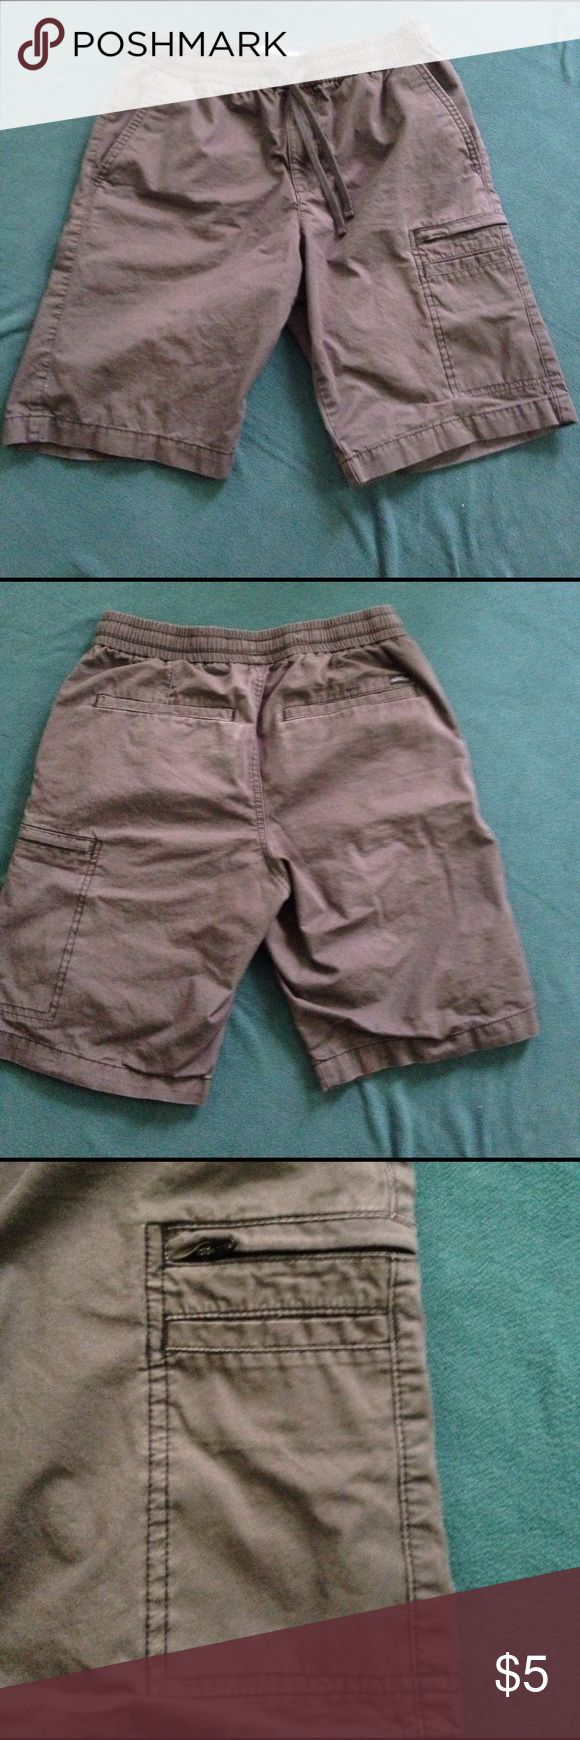 Men's shorts GUC. Men's elastic waist shorts with zipper and drawstring. One pocket is zippered to securely hold your things. Minor fading, but otherwise in great shape. Smoke-free home. 🌺I offer a 15% discount when you bundle 2 or more listings!🌺 Lee Dungarees Shorts